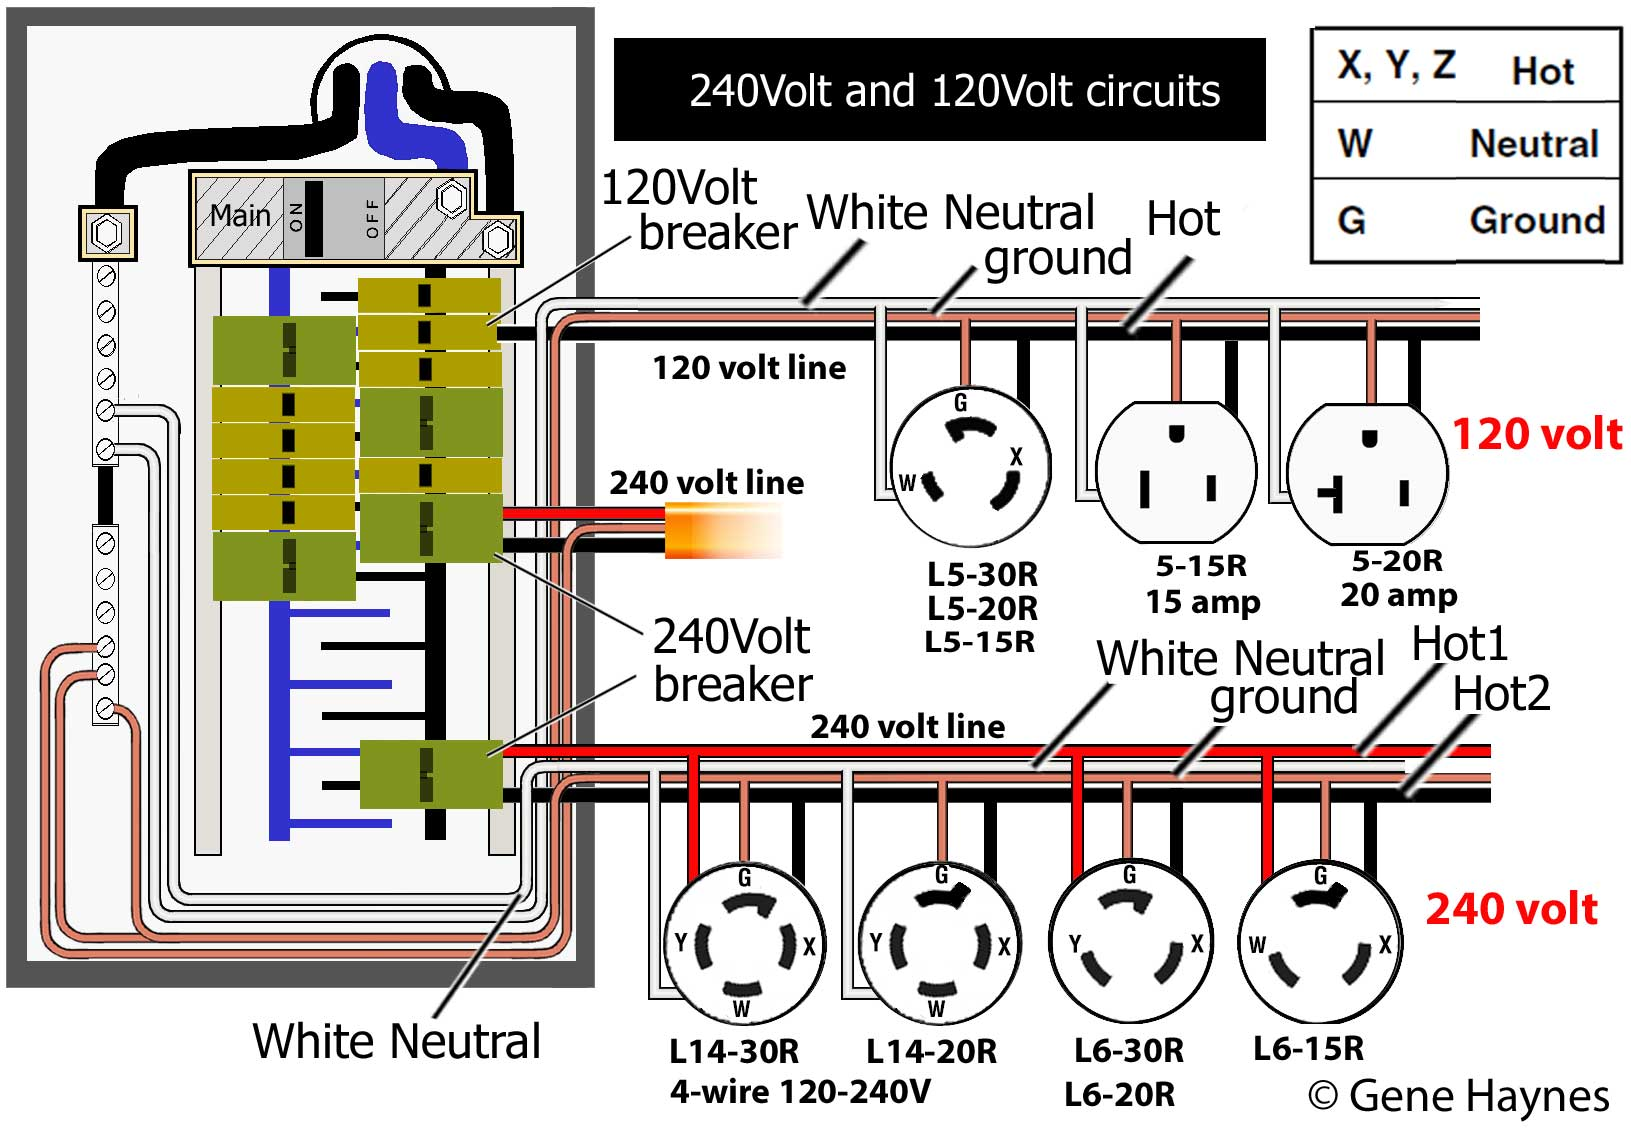 Basic house wiring 120v and 240v requires two wires to complete circuit and ground wire for safety greentooth Images